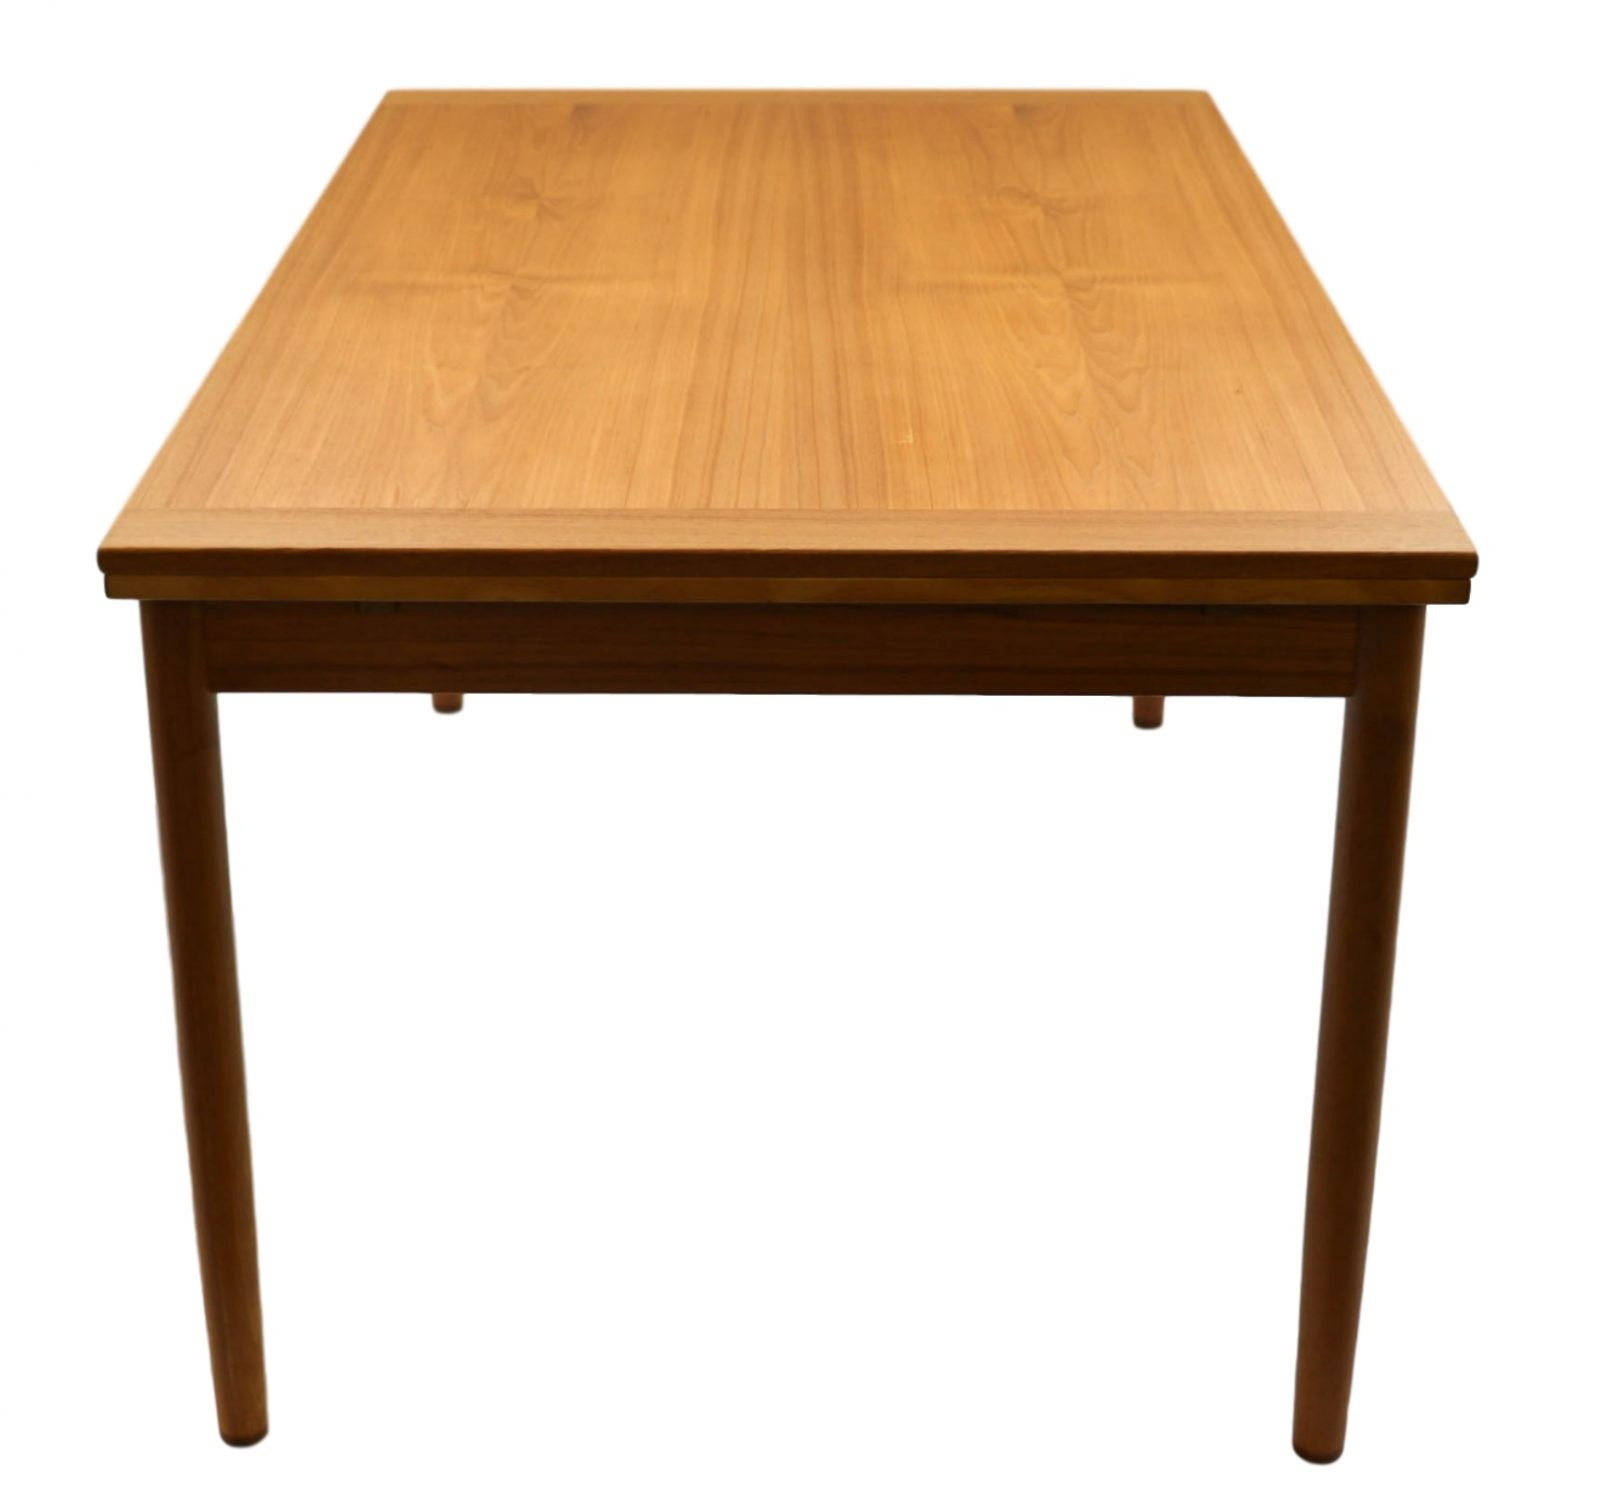 Danish Mid Century Modern Teak Extendable Dining Table